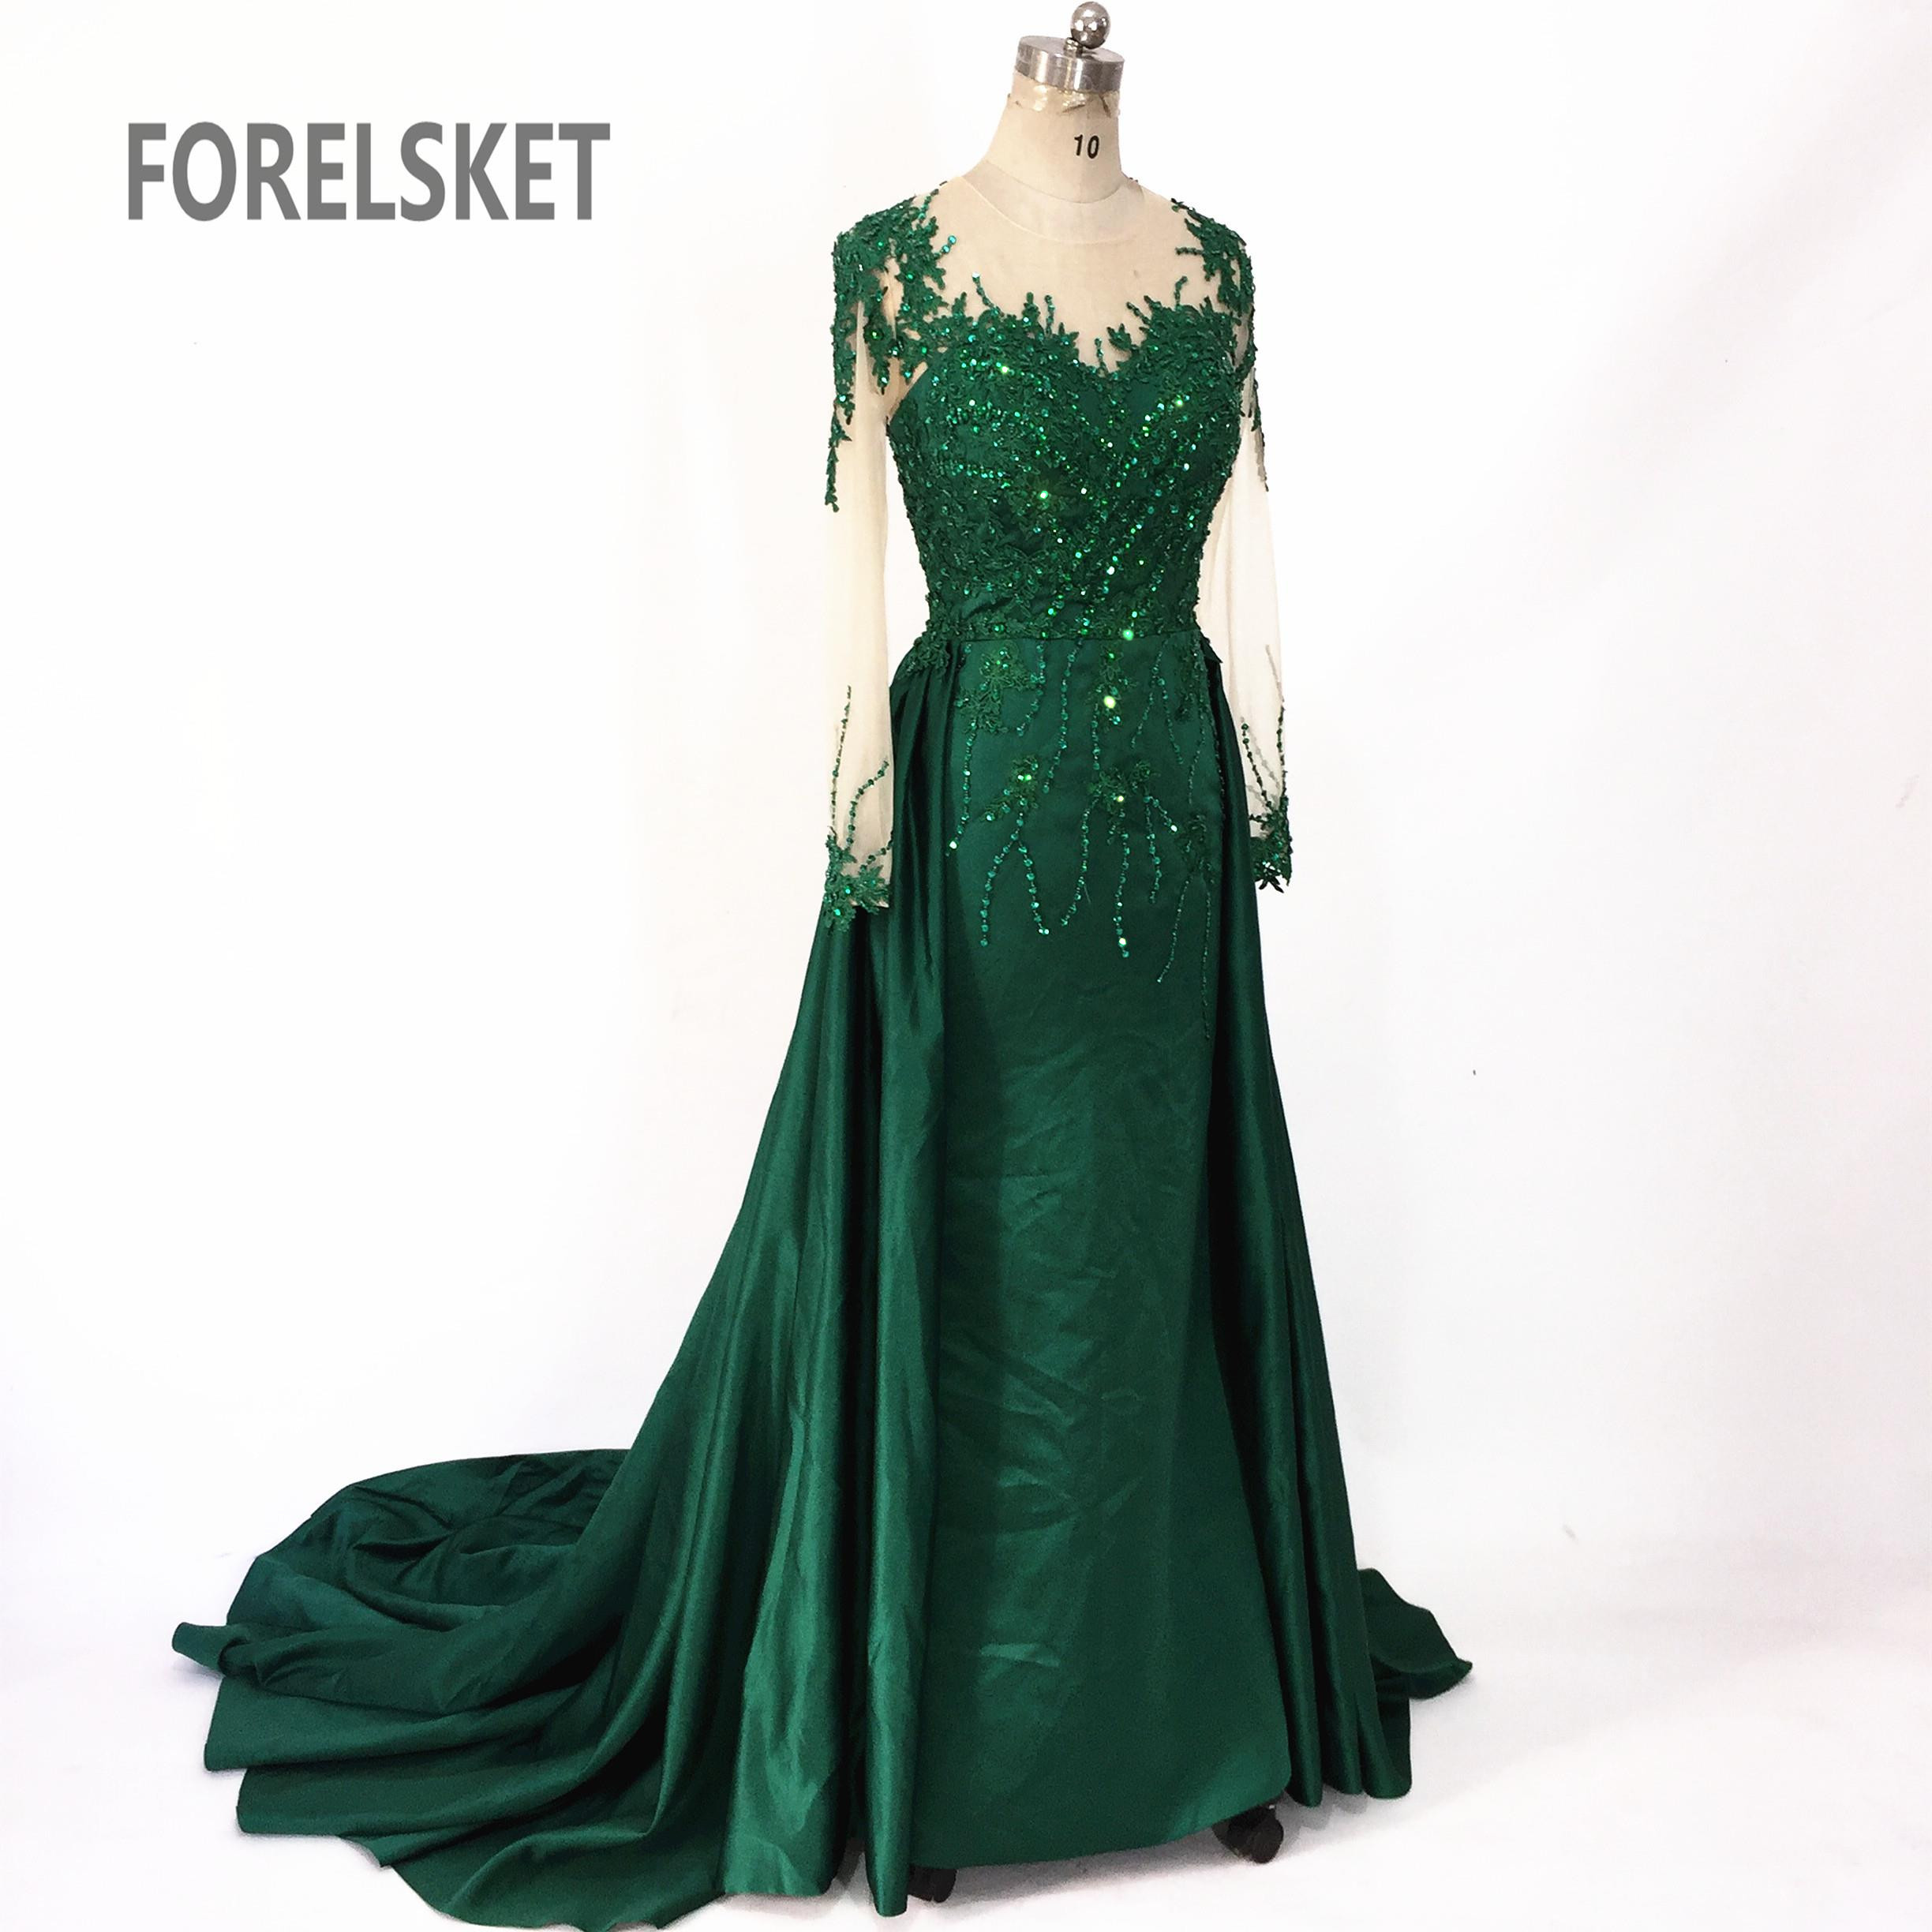 Beading Satin Mermaid Prom Dresses Green 2020 Illusion Saudi Arabia Lace Appliques Long Sleeves Formal Long Evening Party Gowns